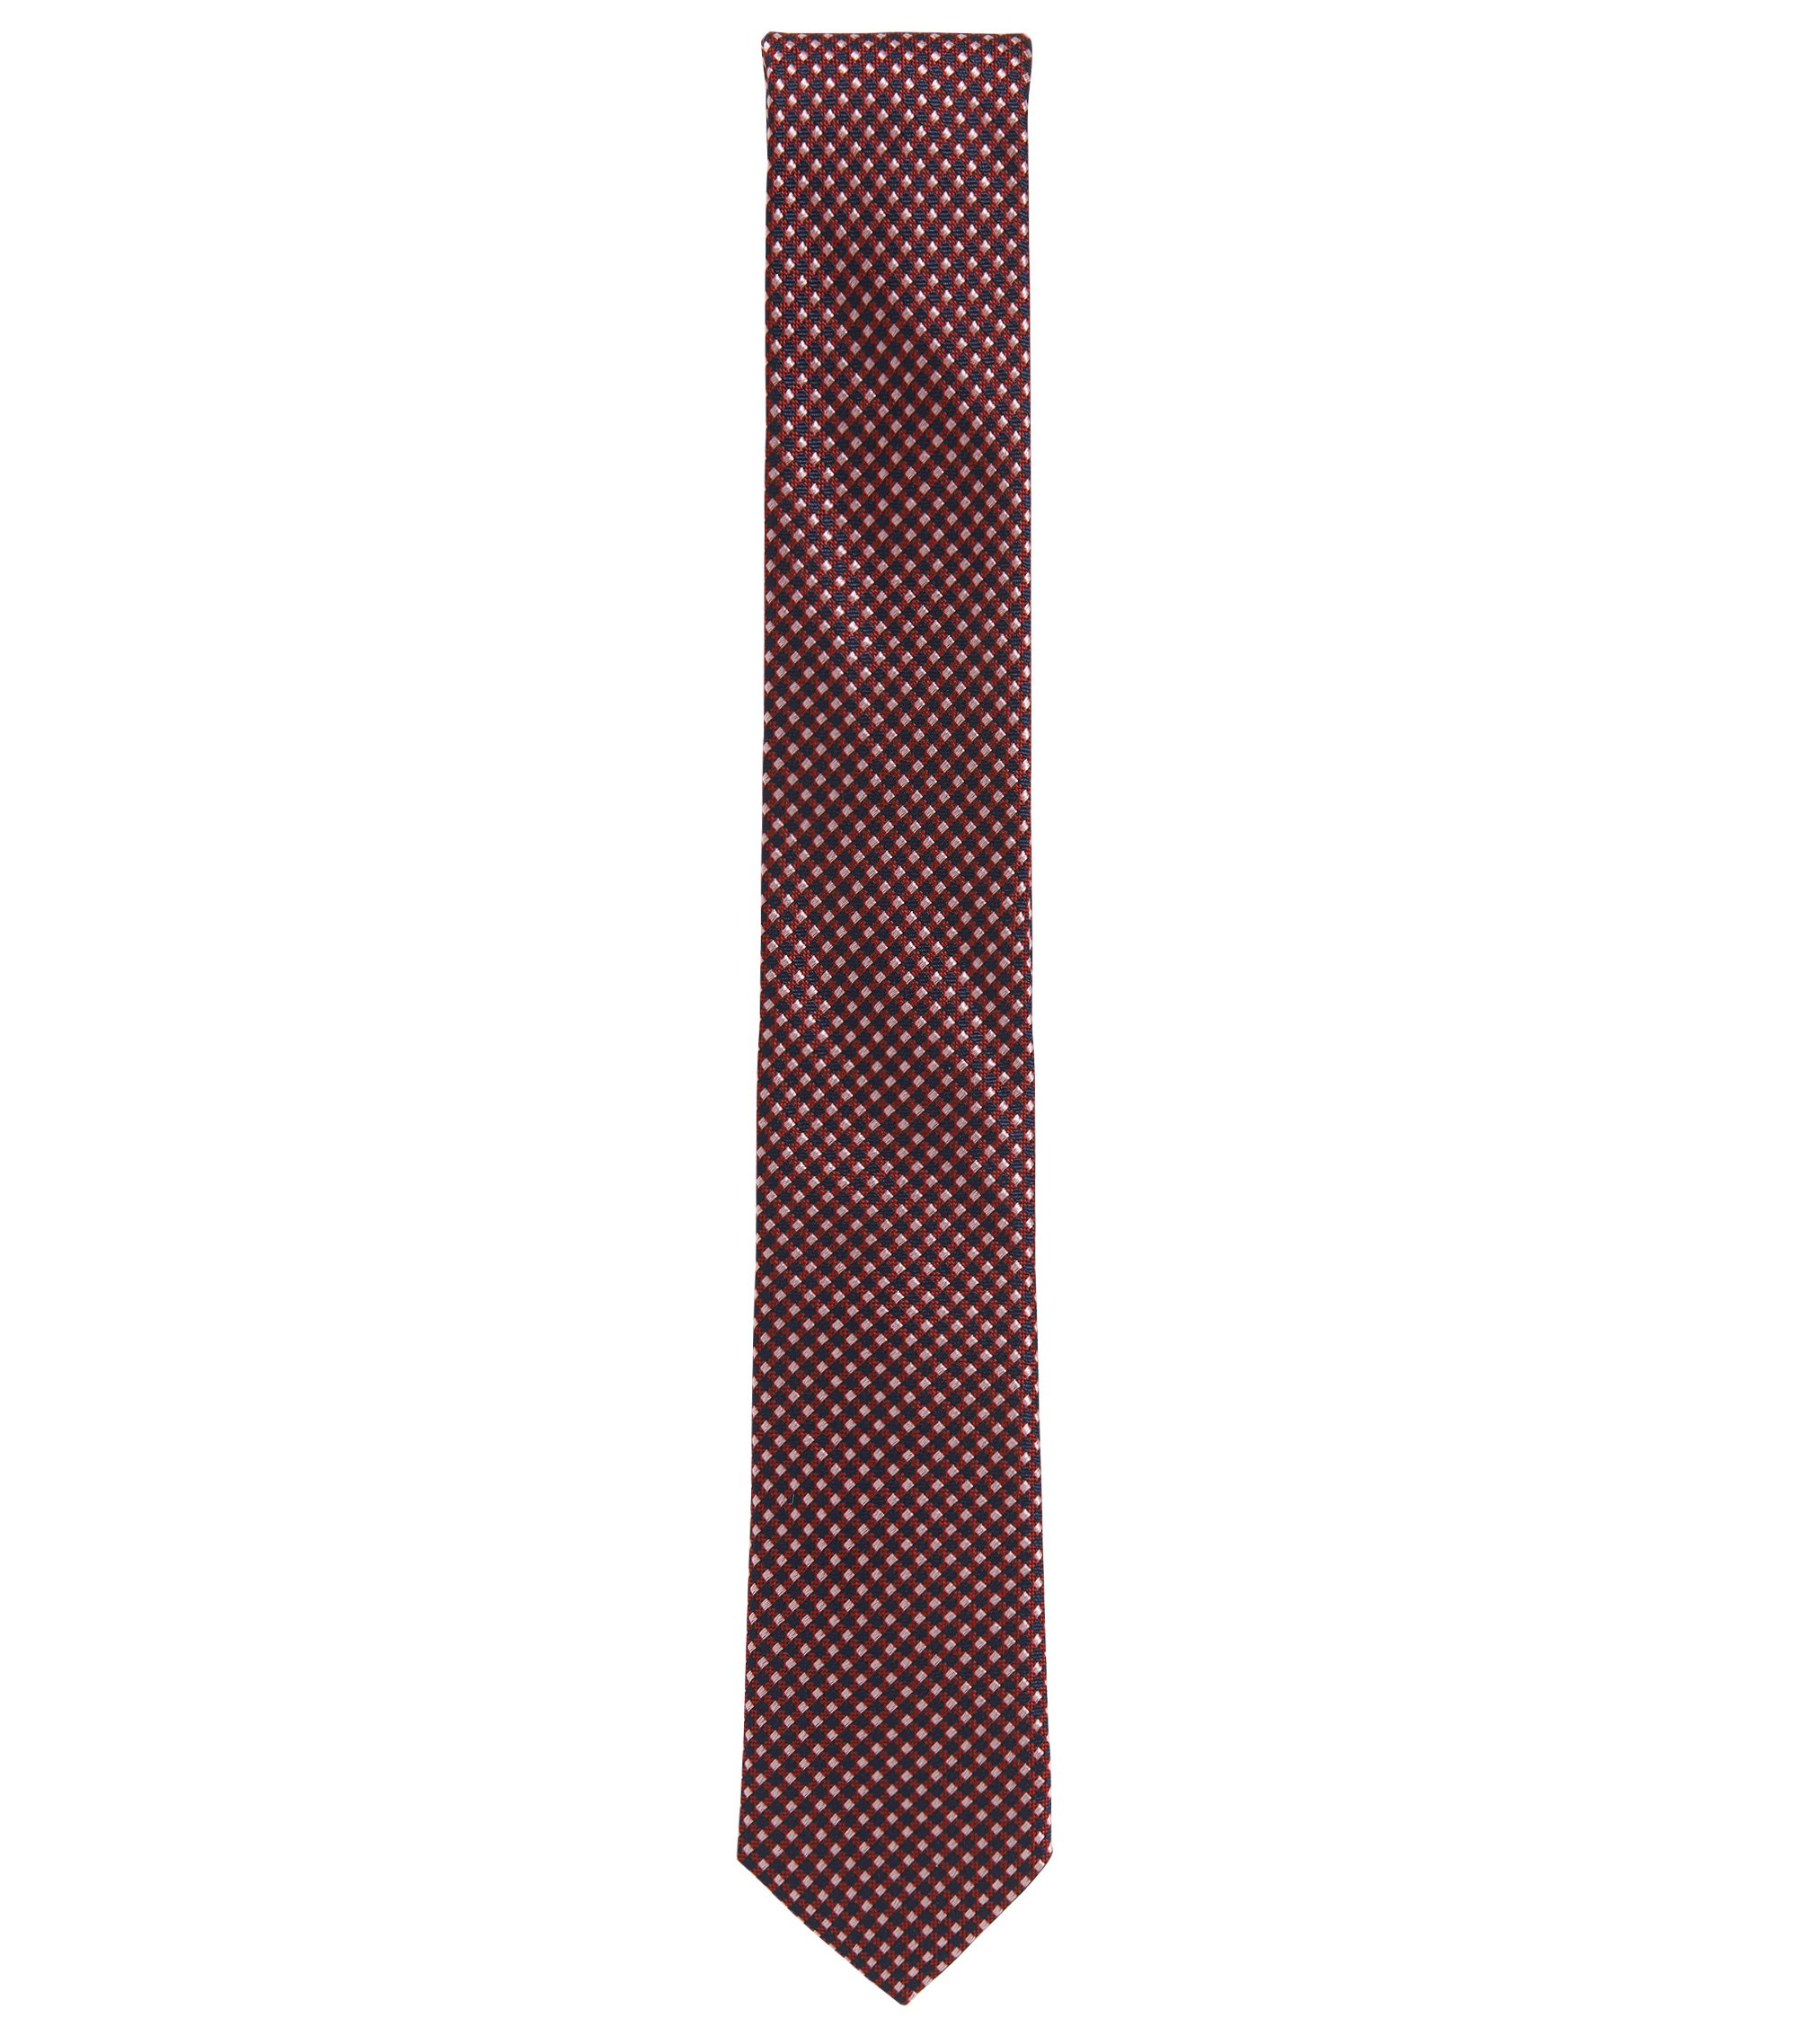 Silk-jacquard tie made in Italy, Dark pink